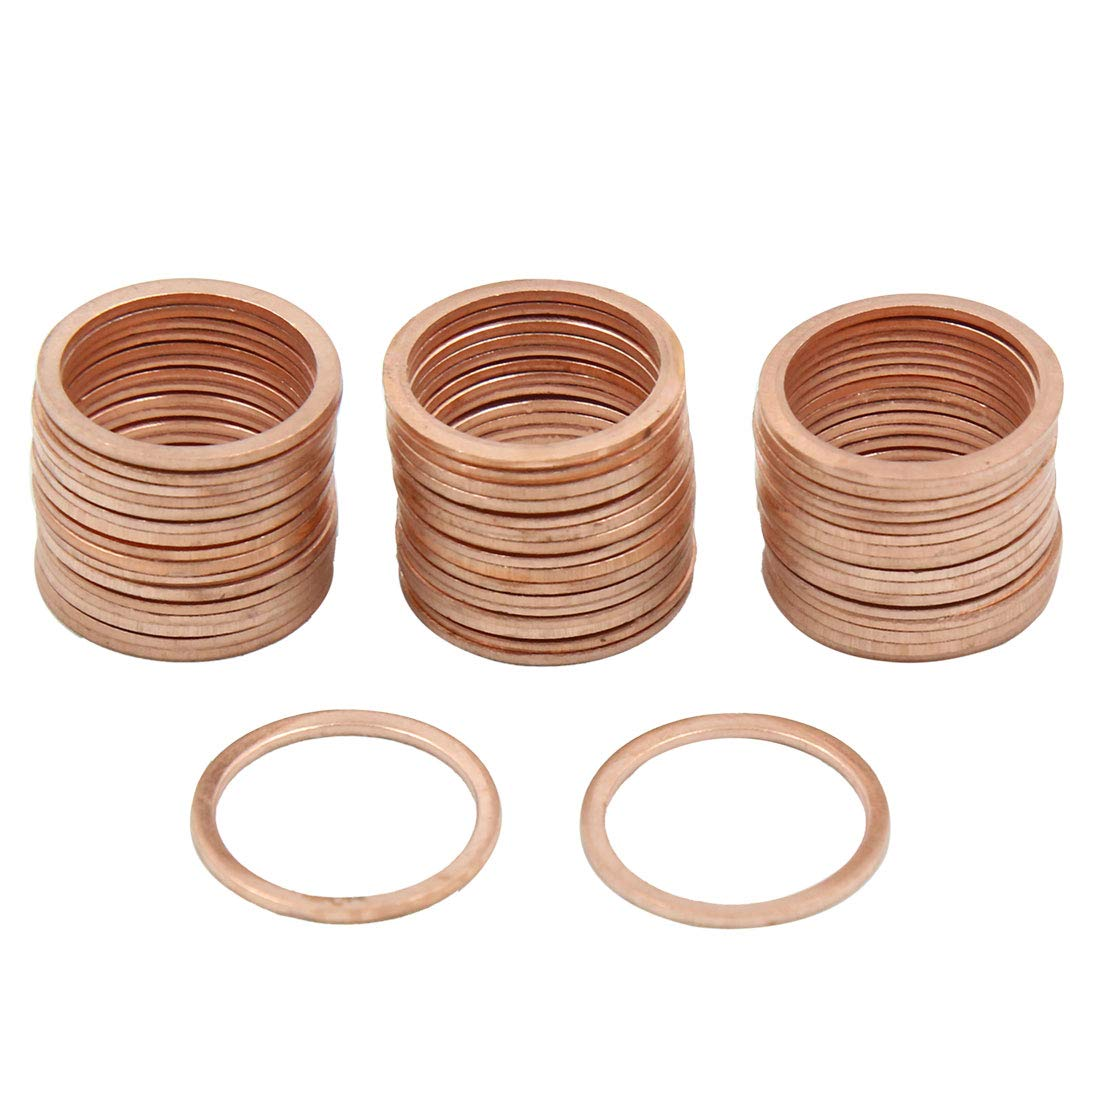 X AUTOHAUX 17mm Inner Dia Copper Crush Washers Flat Car Sealing Gaskets Plate Rings 50pcs